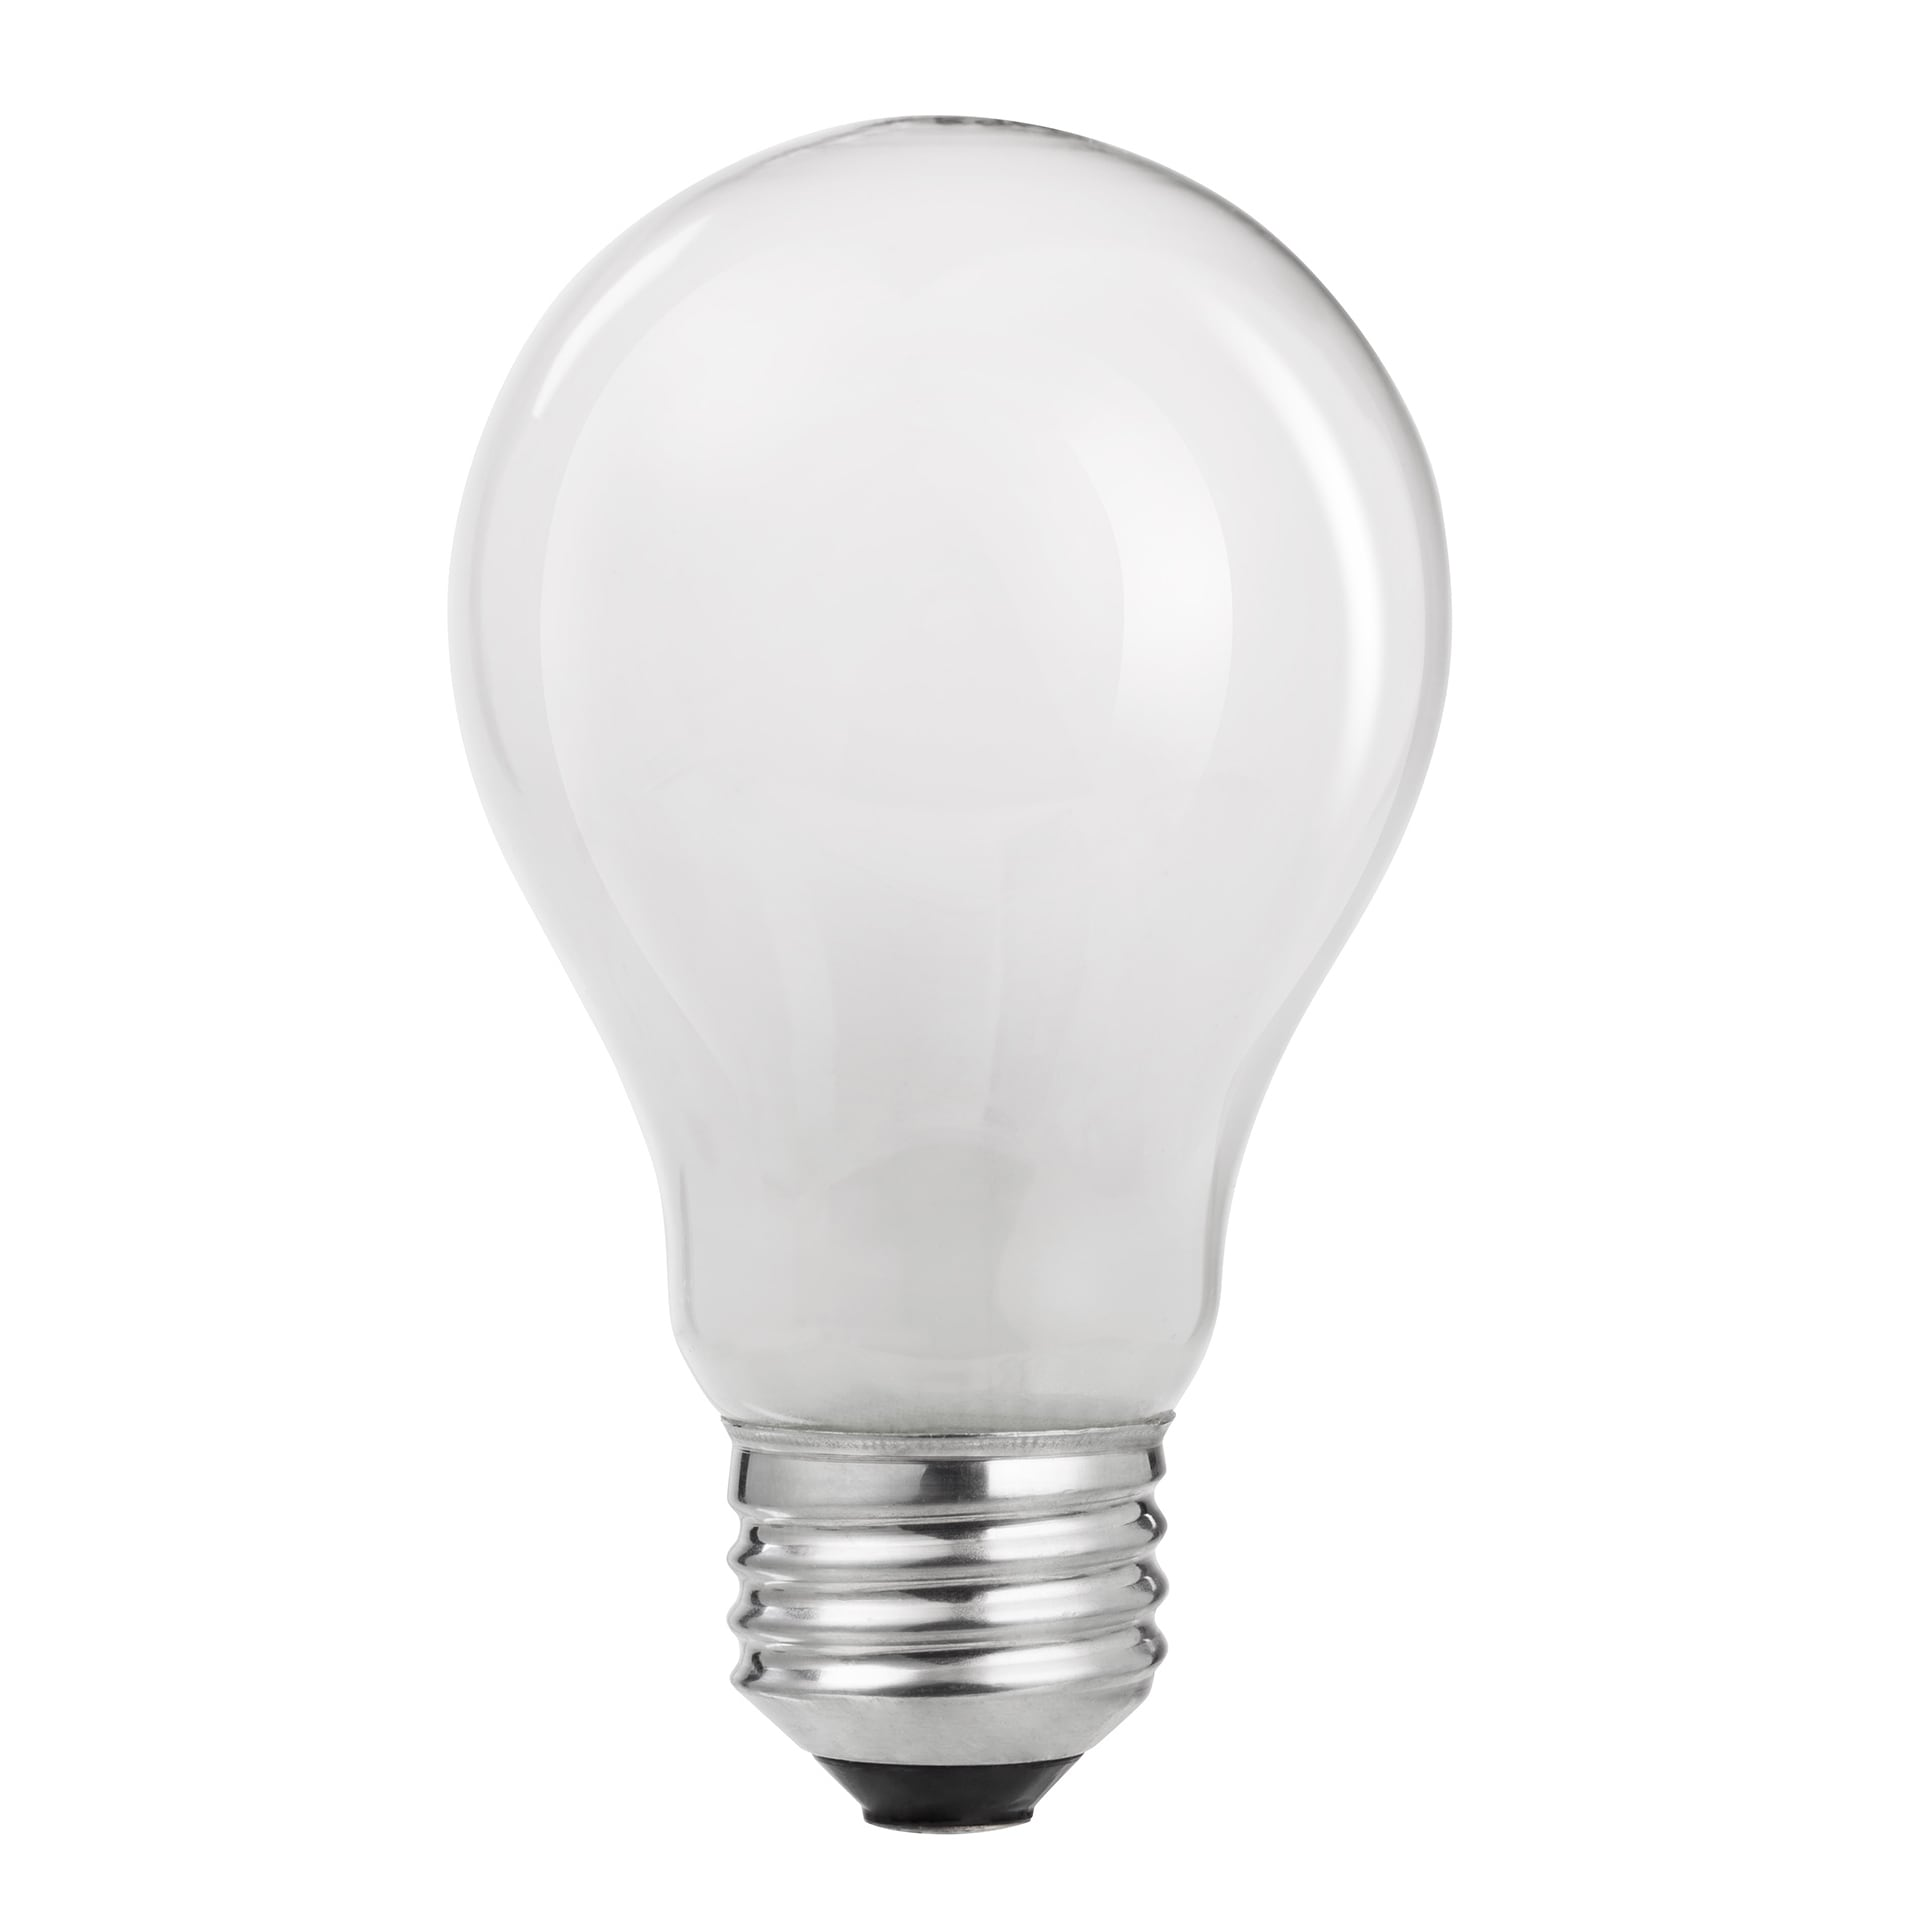 Philips 434324 A19 53 Watt Bulb 4-count (Light bulbs), Cl...